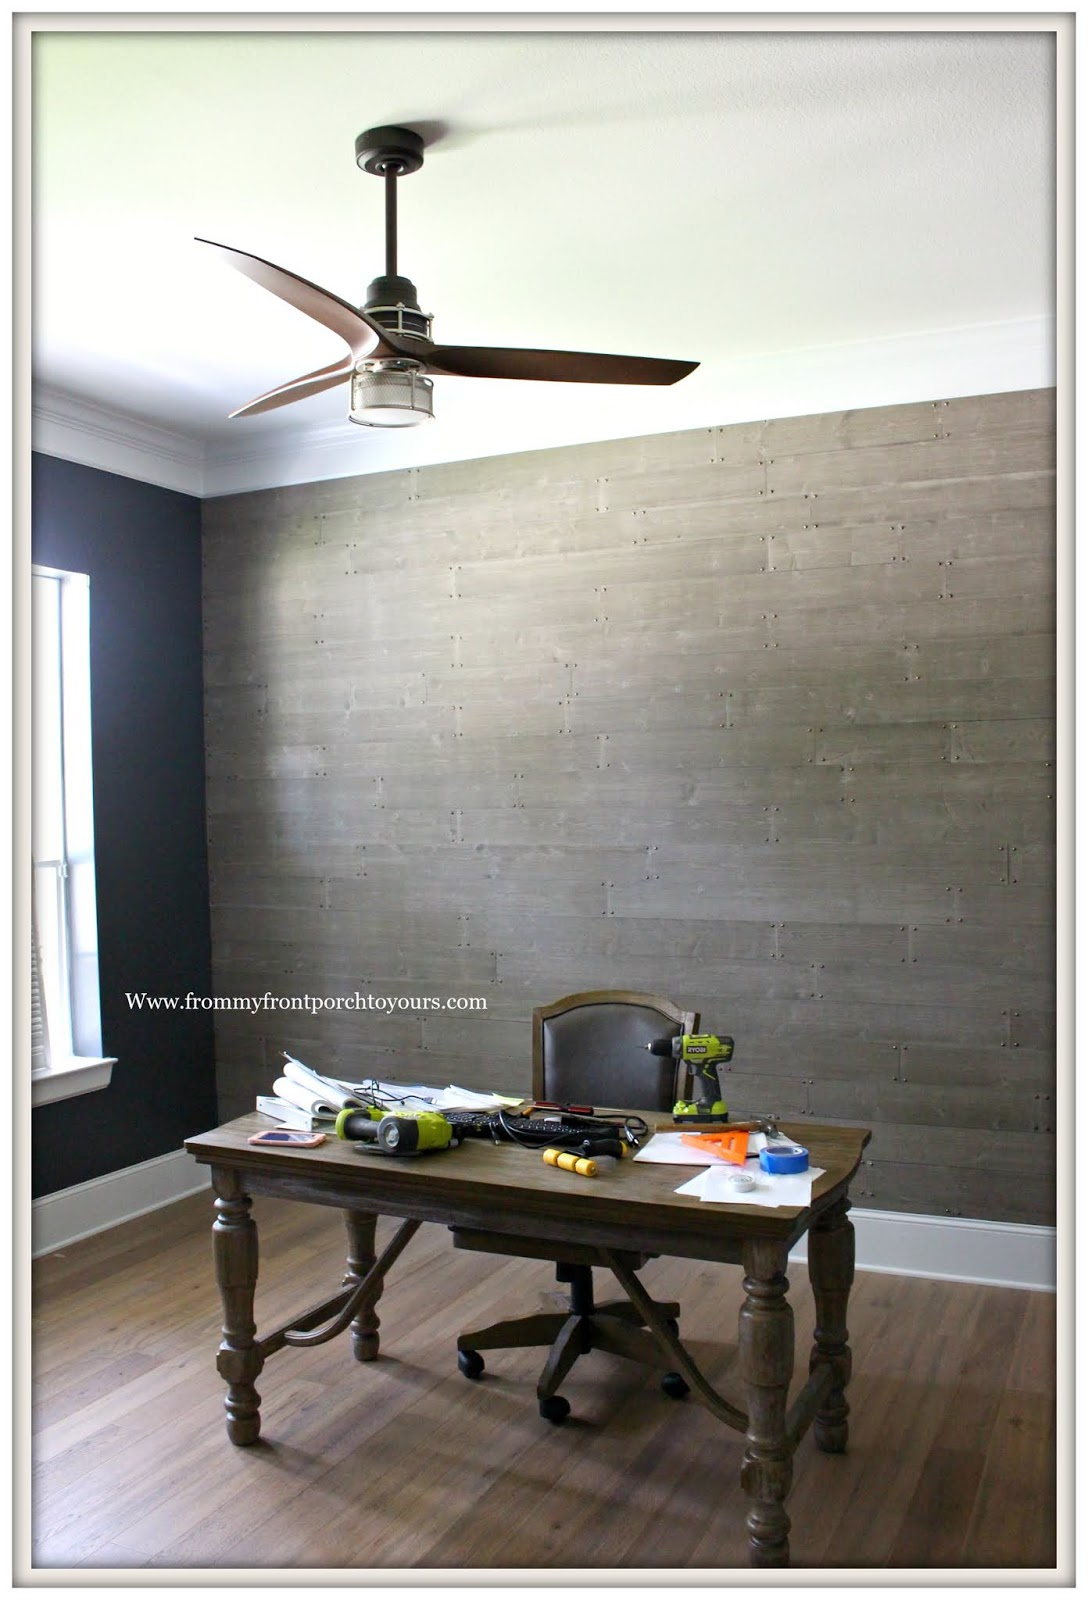 office ceiling fan. Home Office -Ceiling Fan-DIY Makeover-From My Front Porch To Yours Ceiling Fan